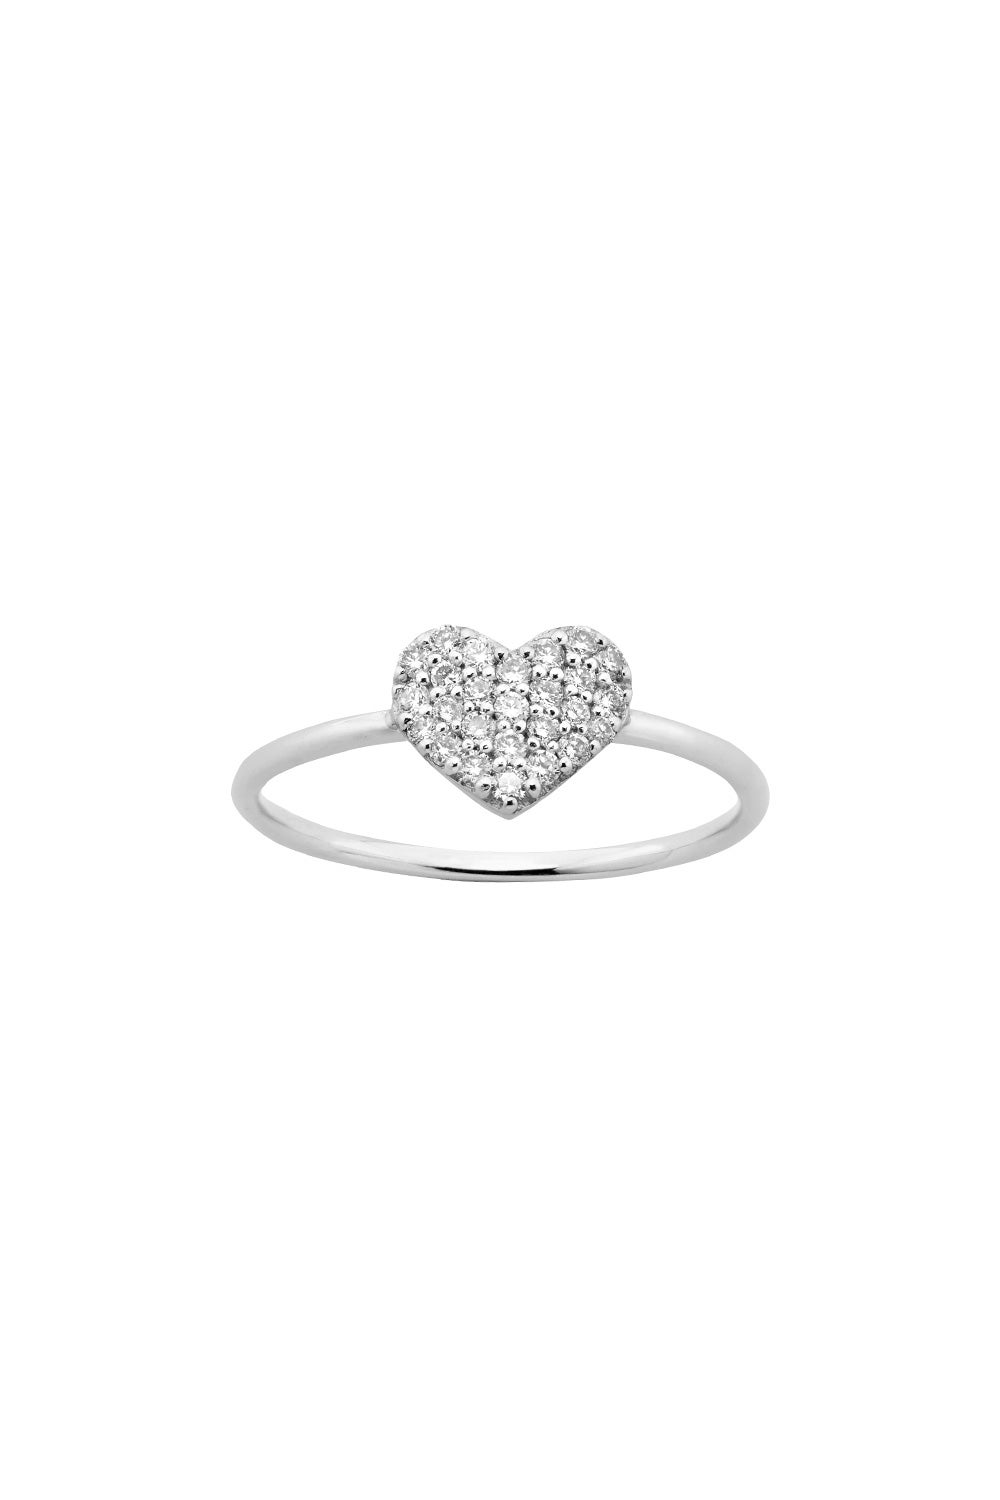 Diamond Heart Ring, White Gold, .19ct Diamond